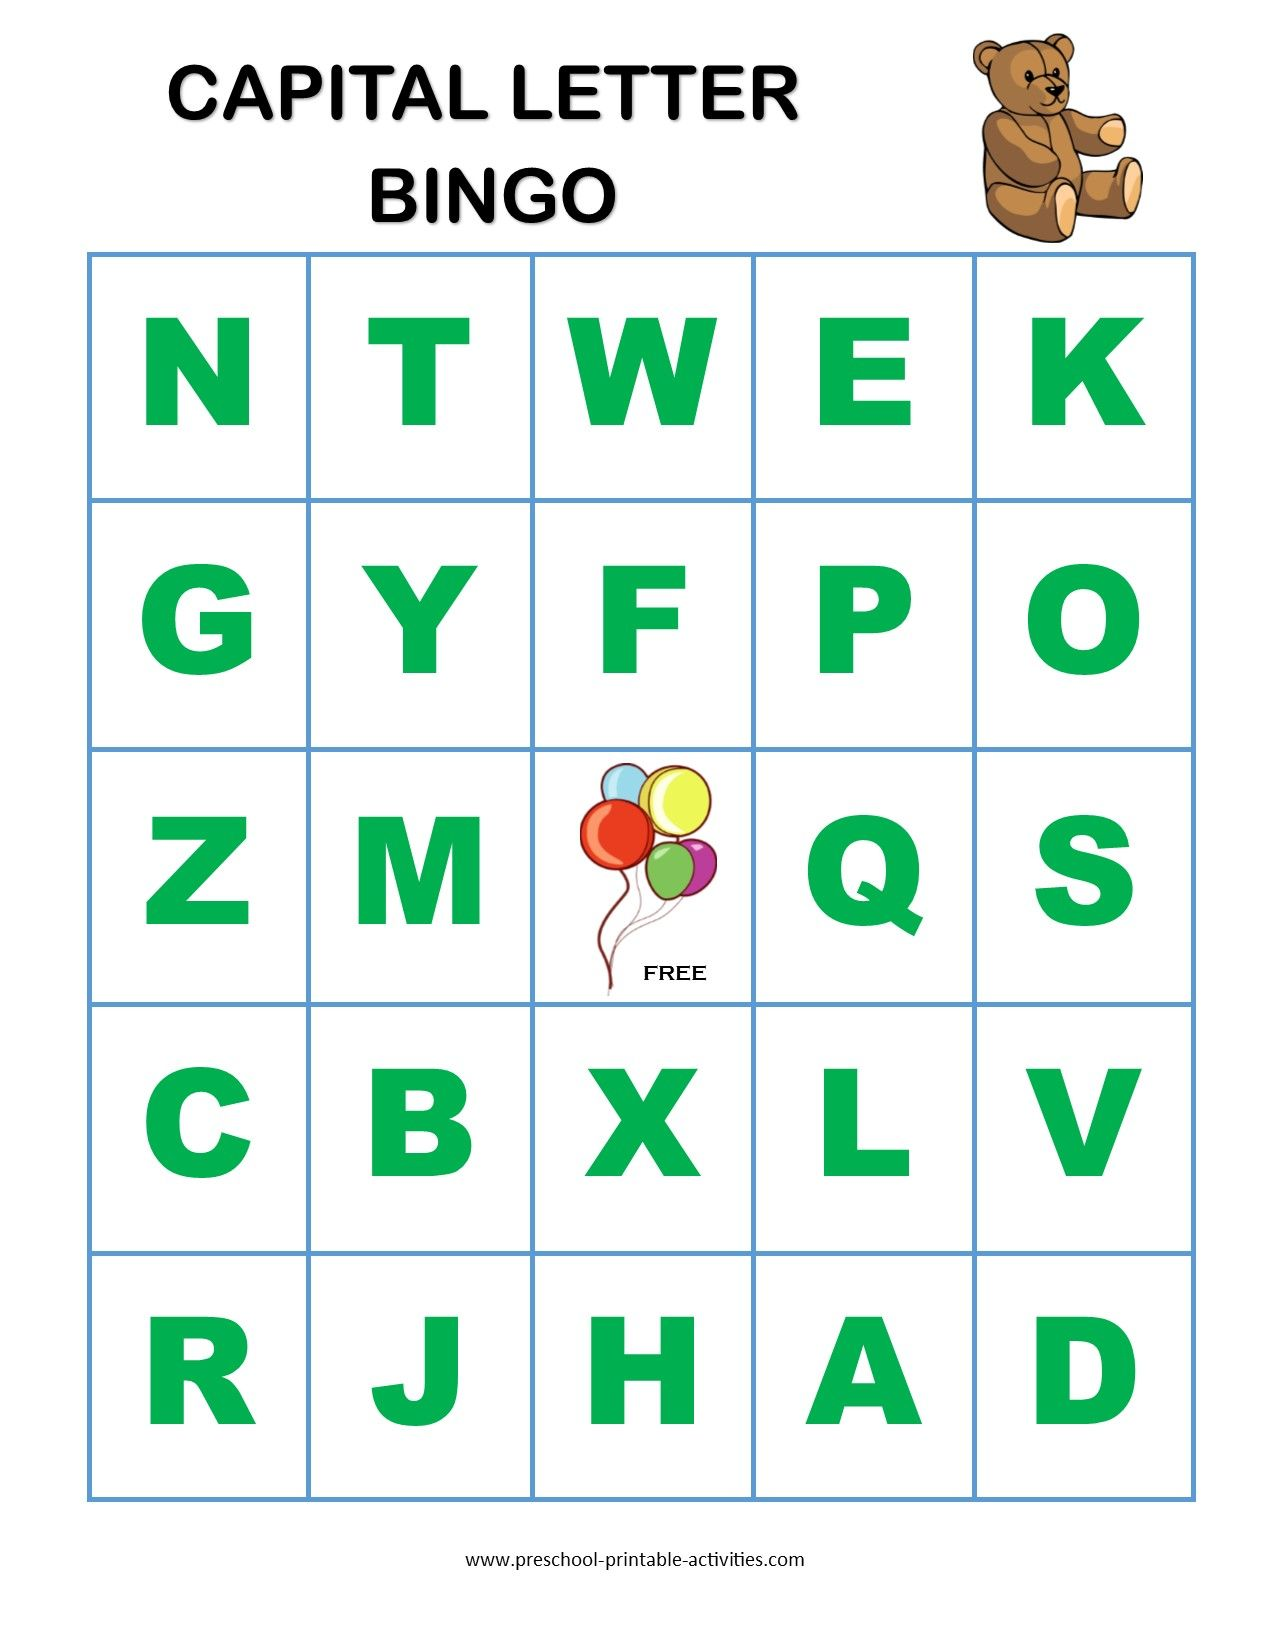 Letter Recognition Bingo Games | Kids learning | Bingo games